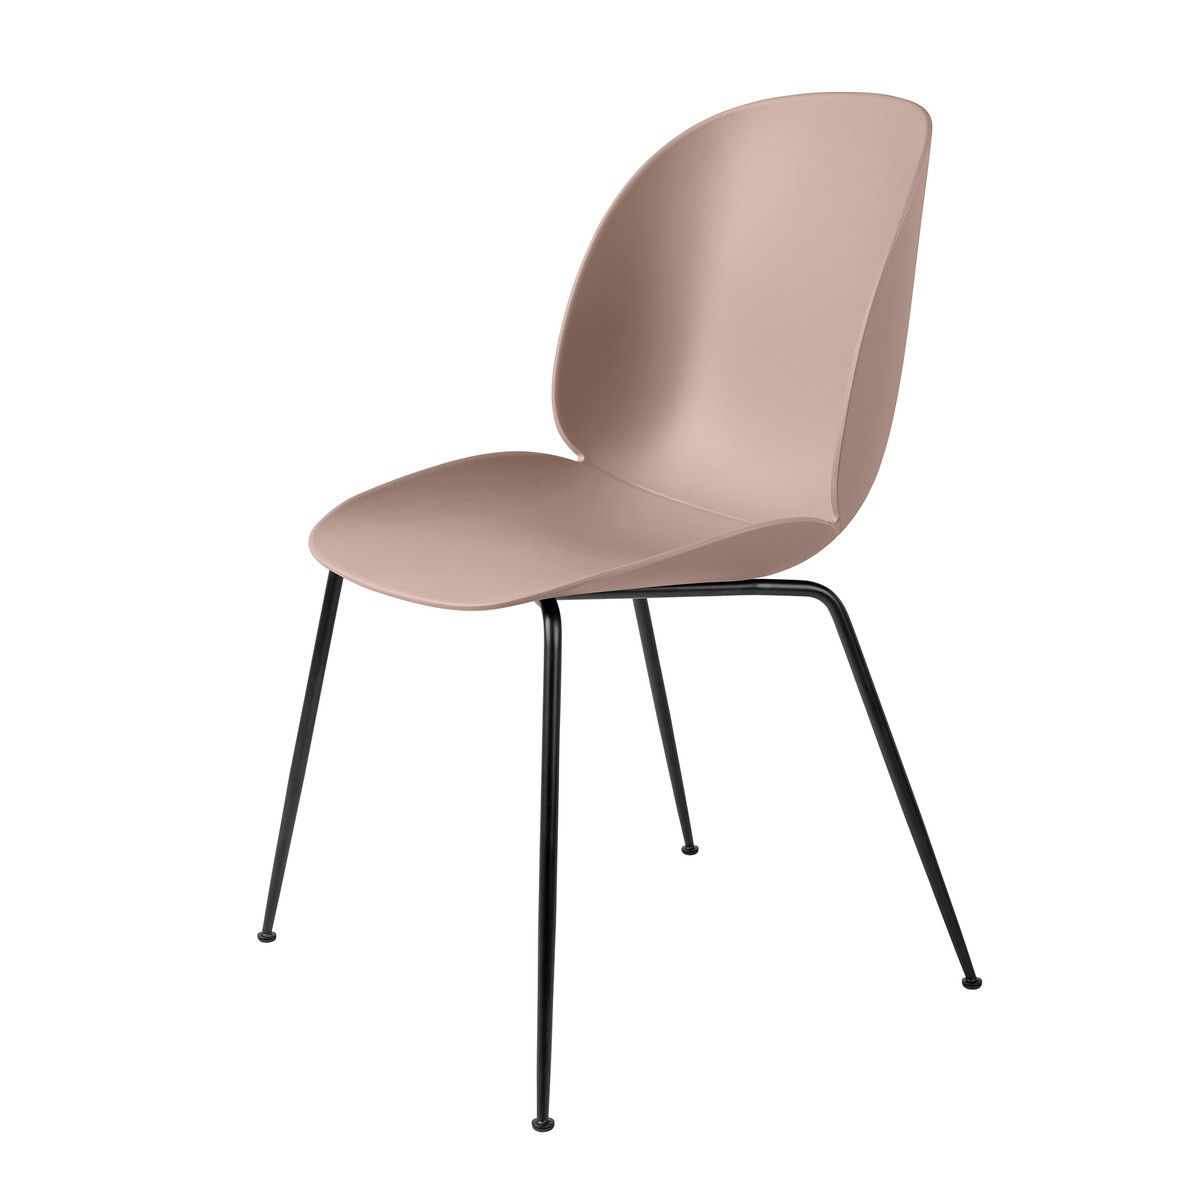 Gubi Beetle Dining Chair, Conic Base schwarz sweet pink